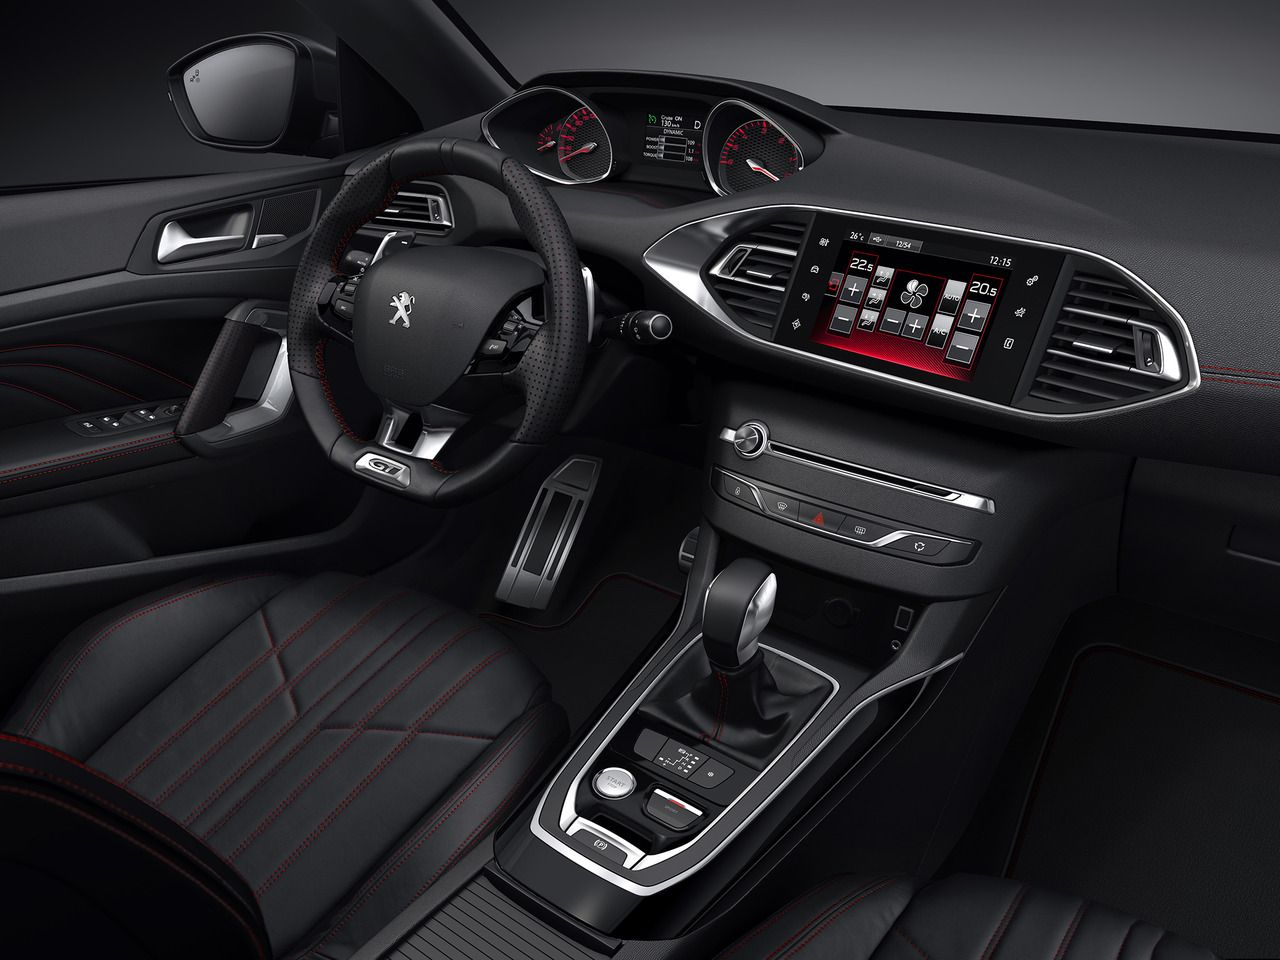 Car Interiors 2014 Peugeot 308 Gt Peugeot 308 Peugeot Sports Cars Mustang